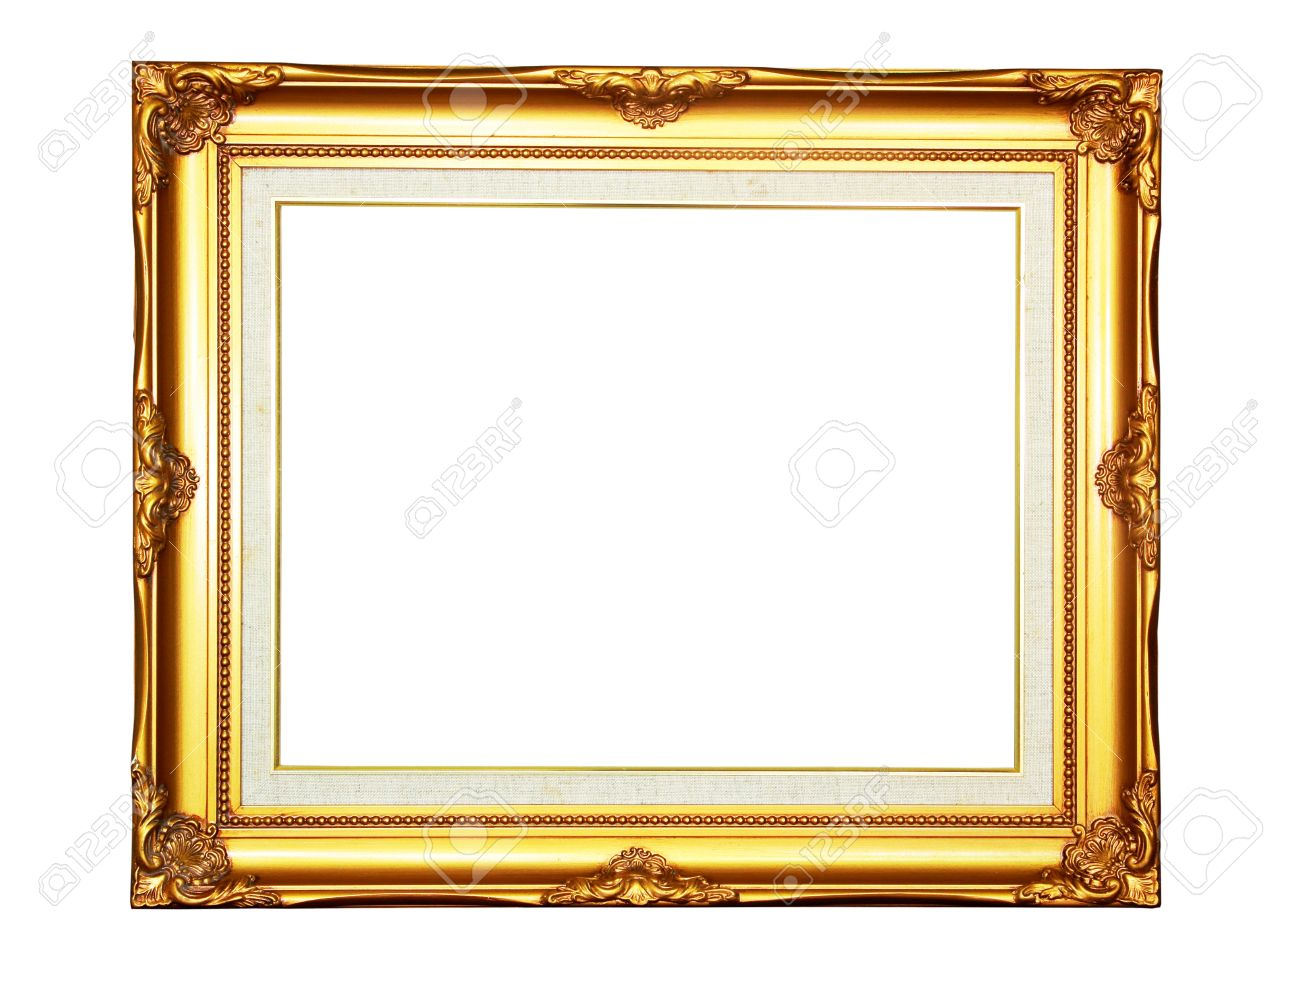 Vintage Gold Wood Photo Frame On White Background Stock Photo ...